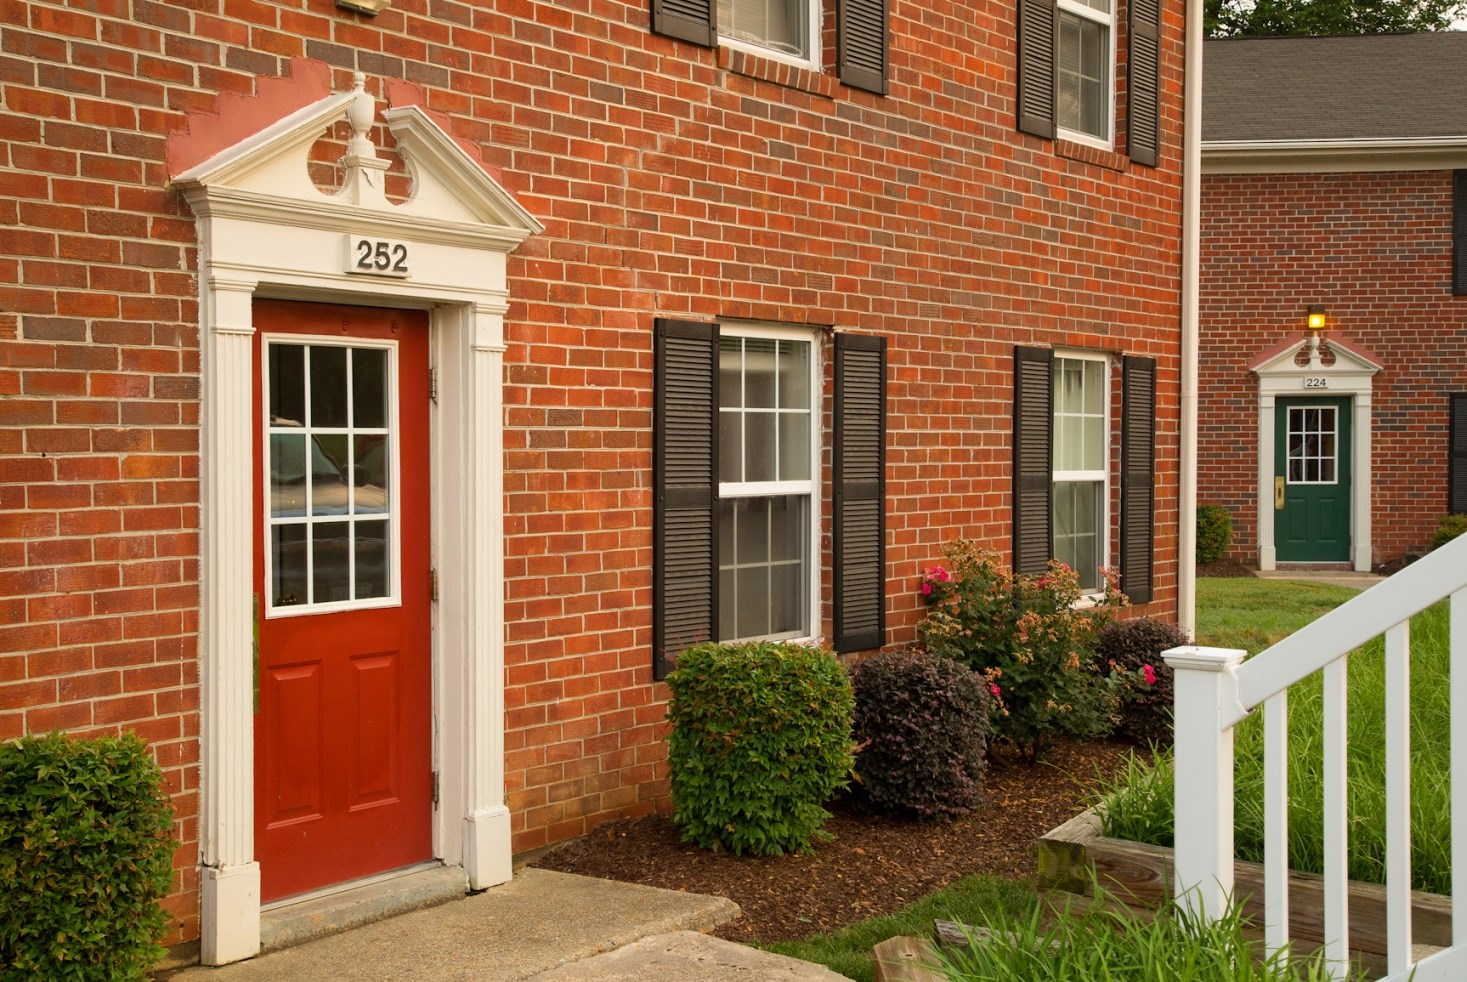 Red door and brick exterior at Colonial Pines Apartments